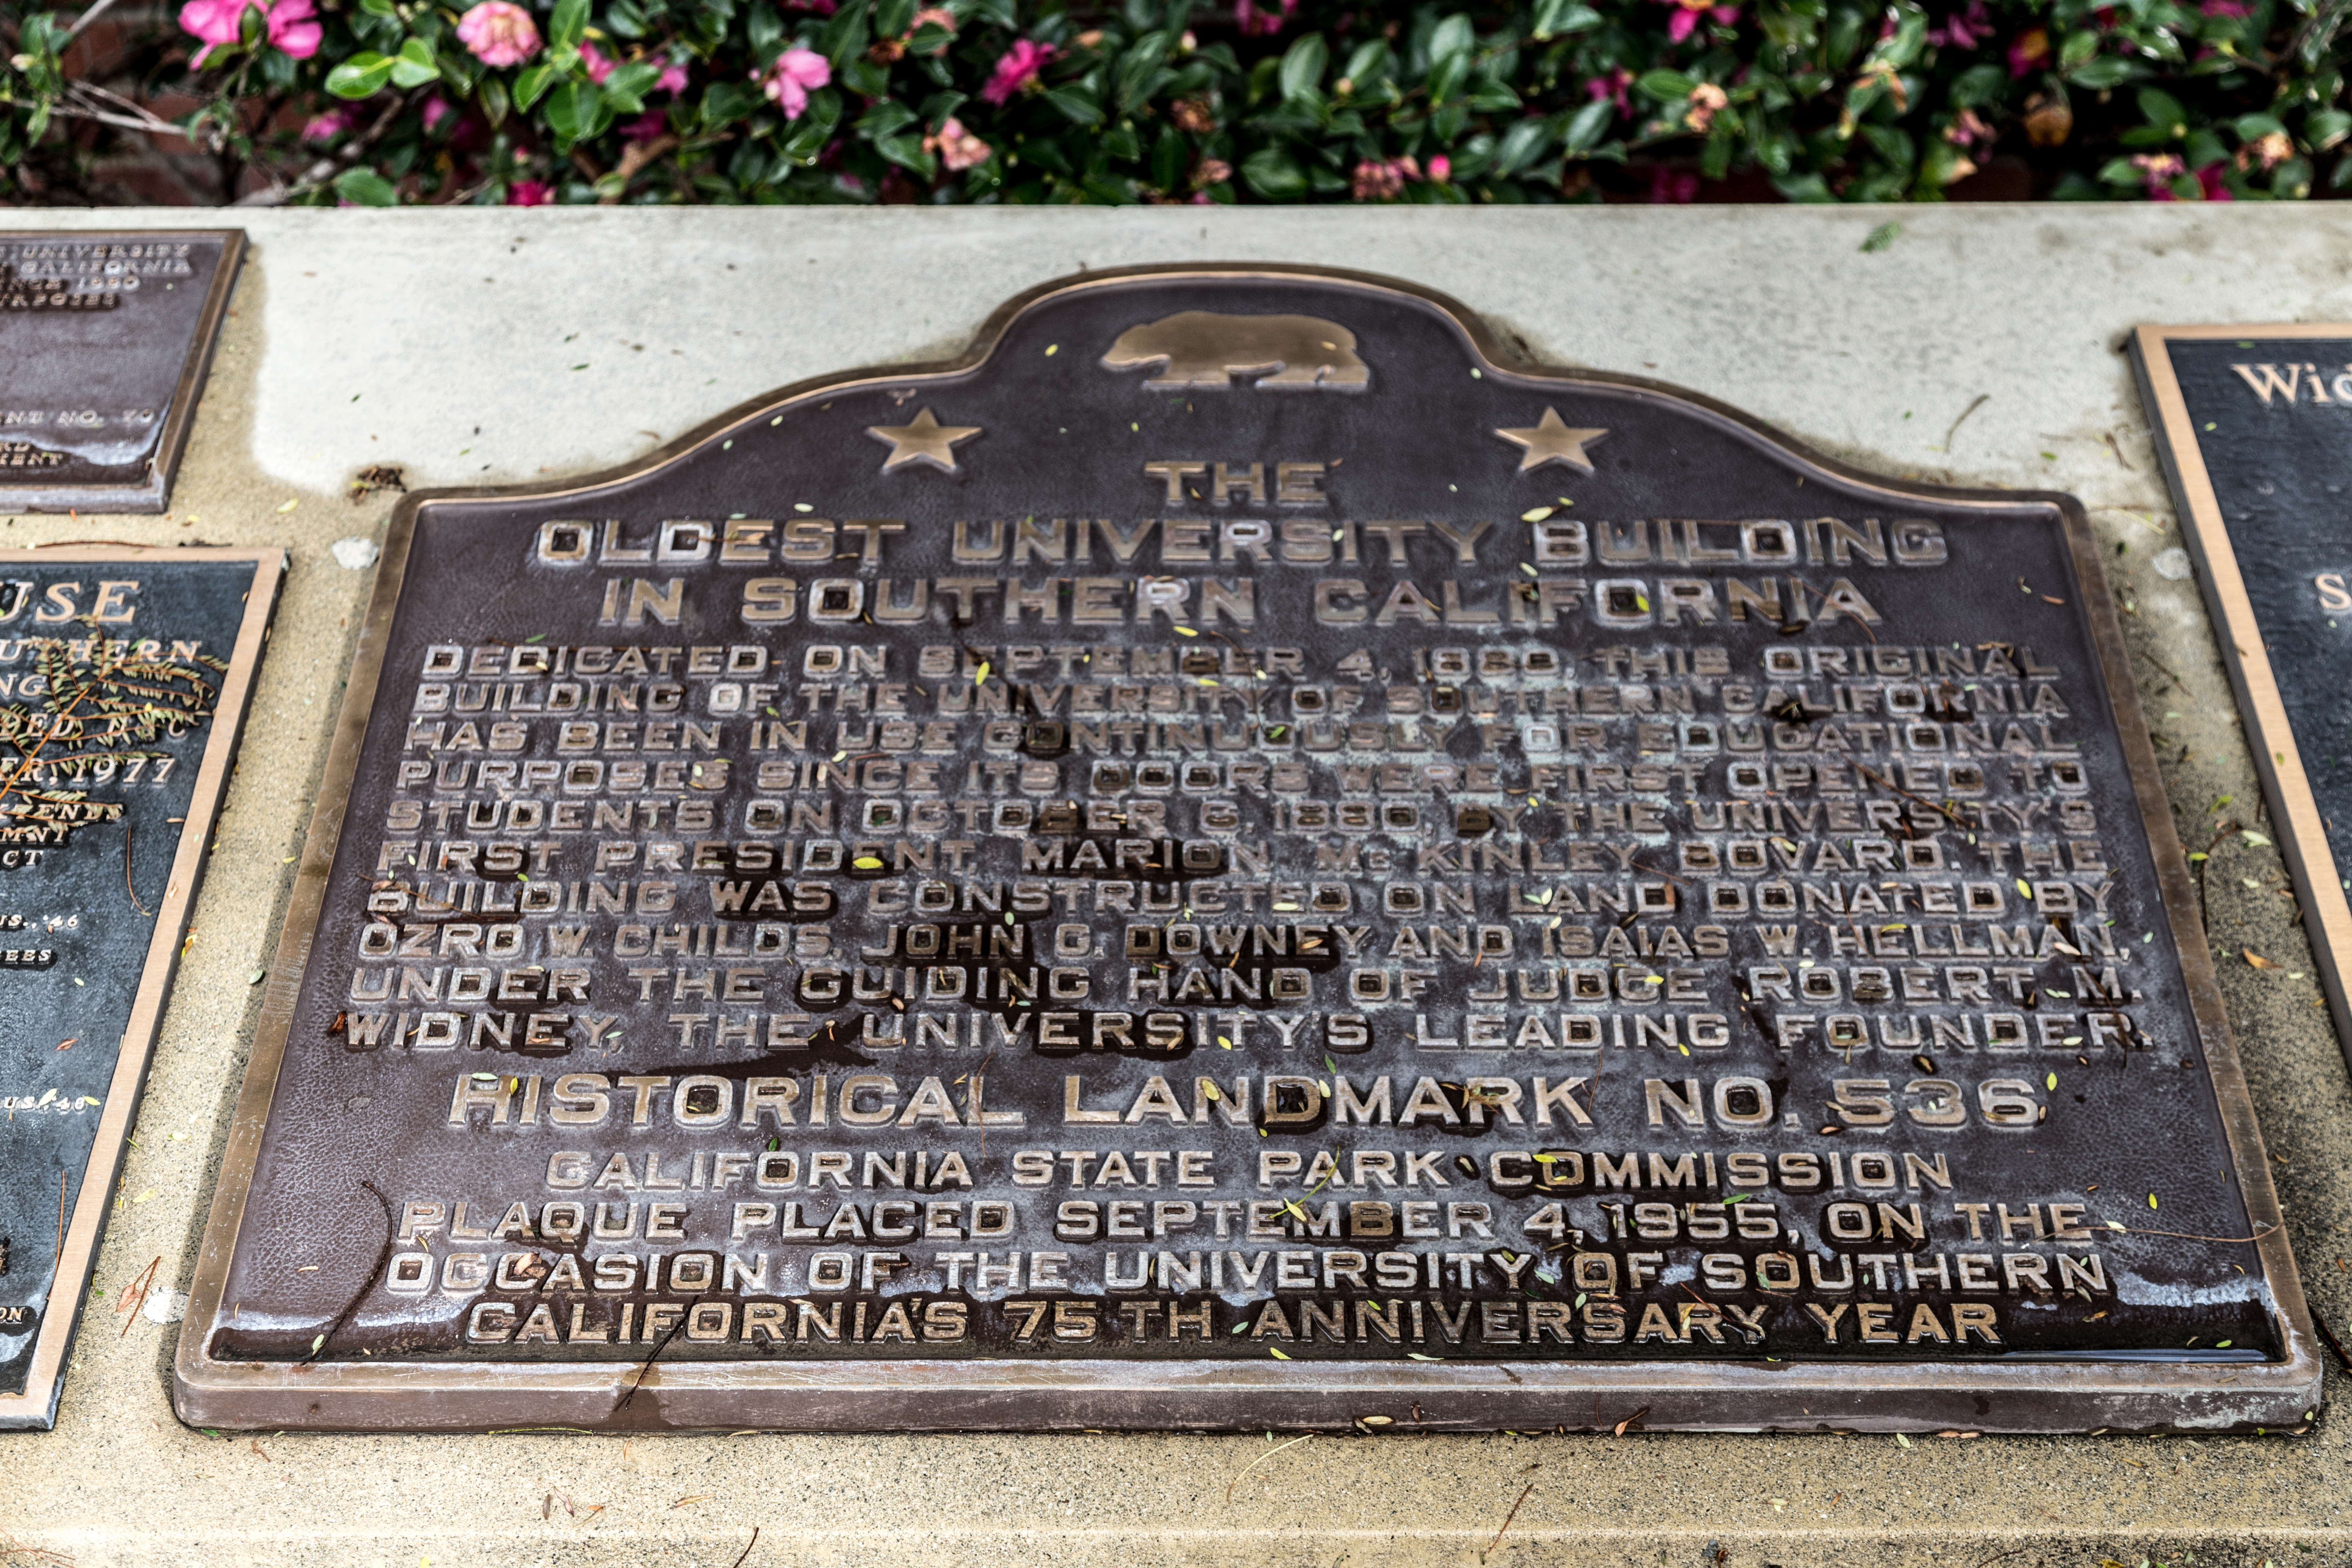 The Oldest University Building in Southern California Marker